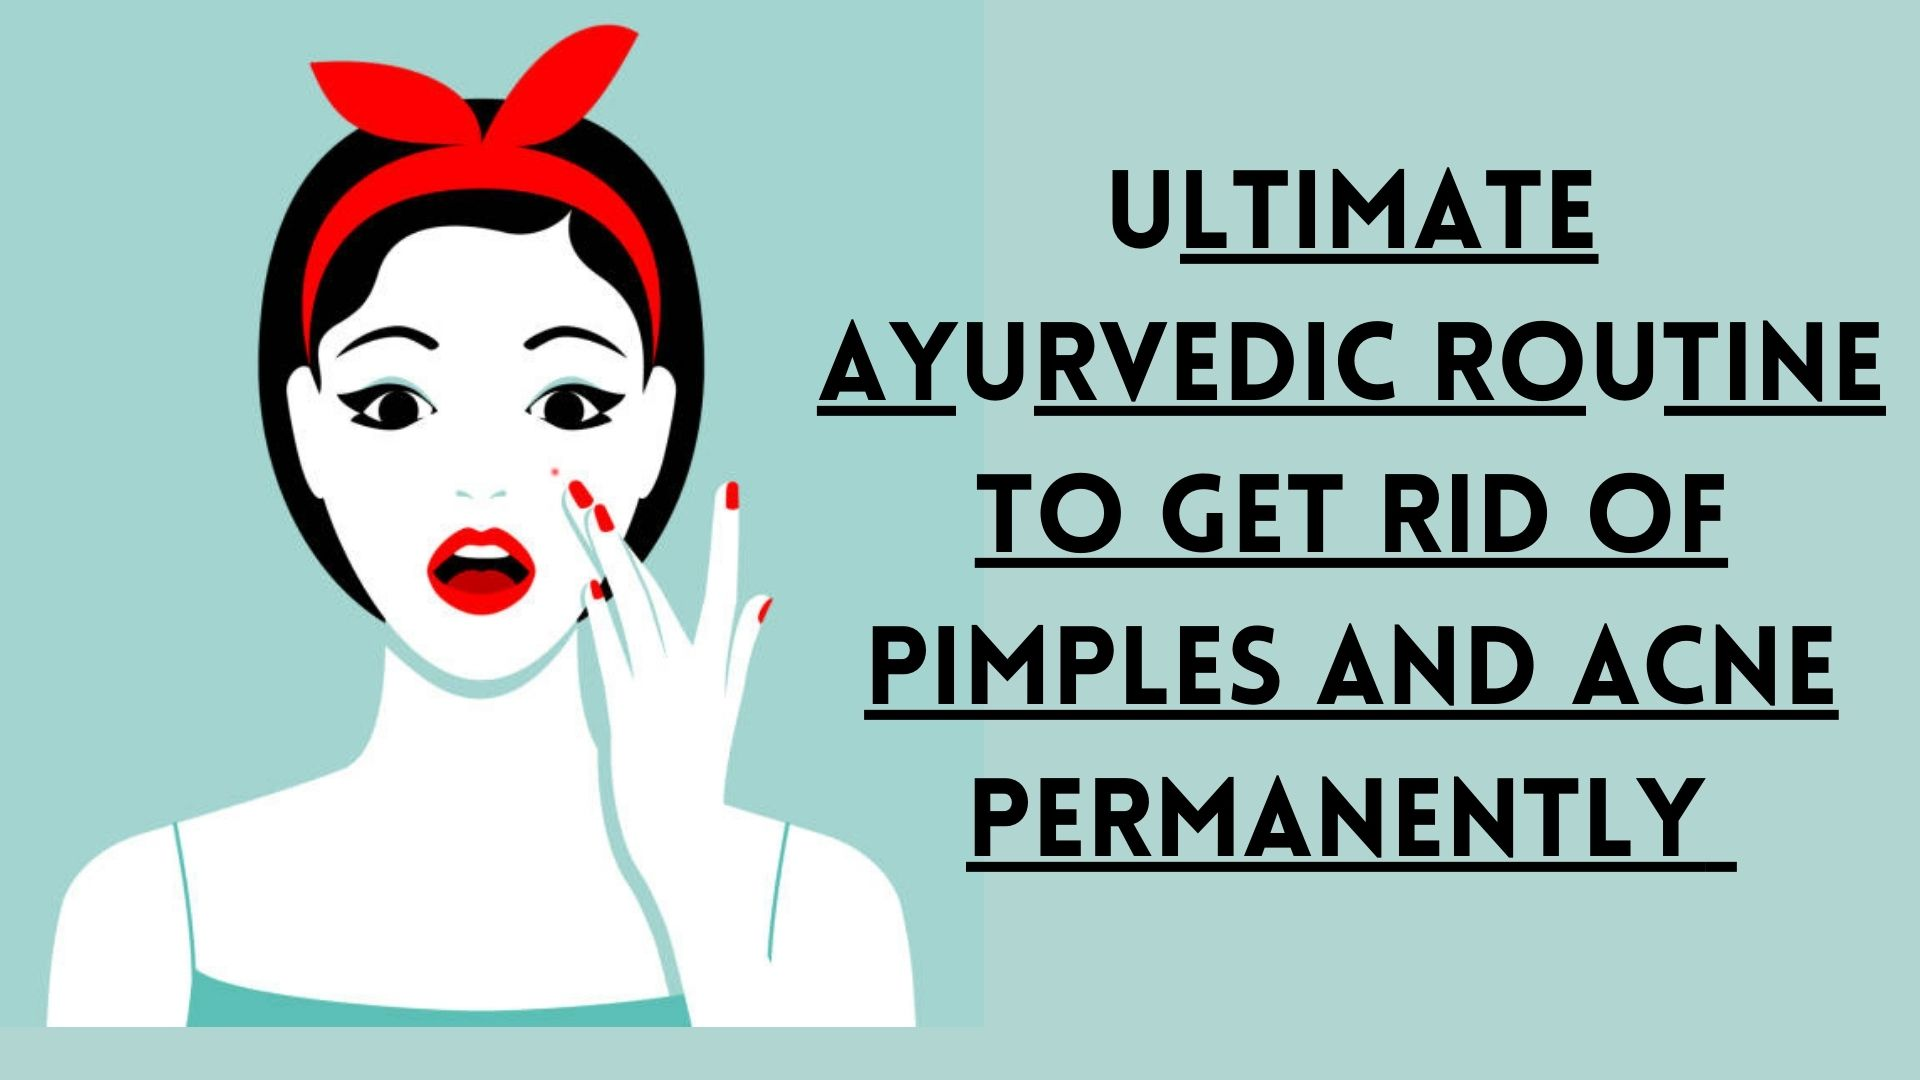 ayurvedic routine to get rid of pimples and acne permanently